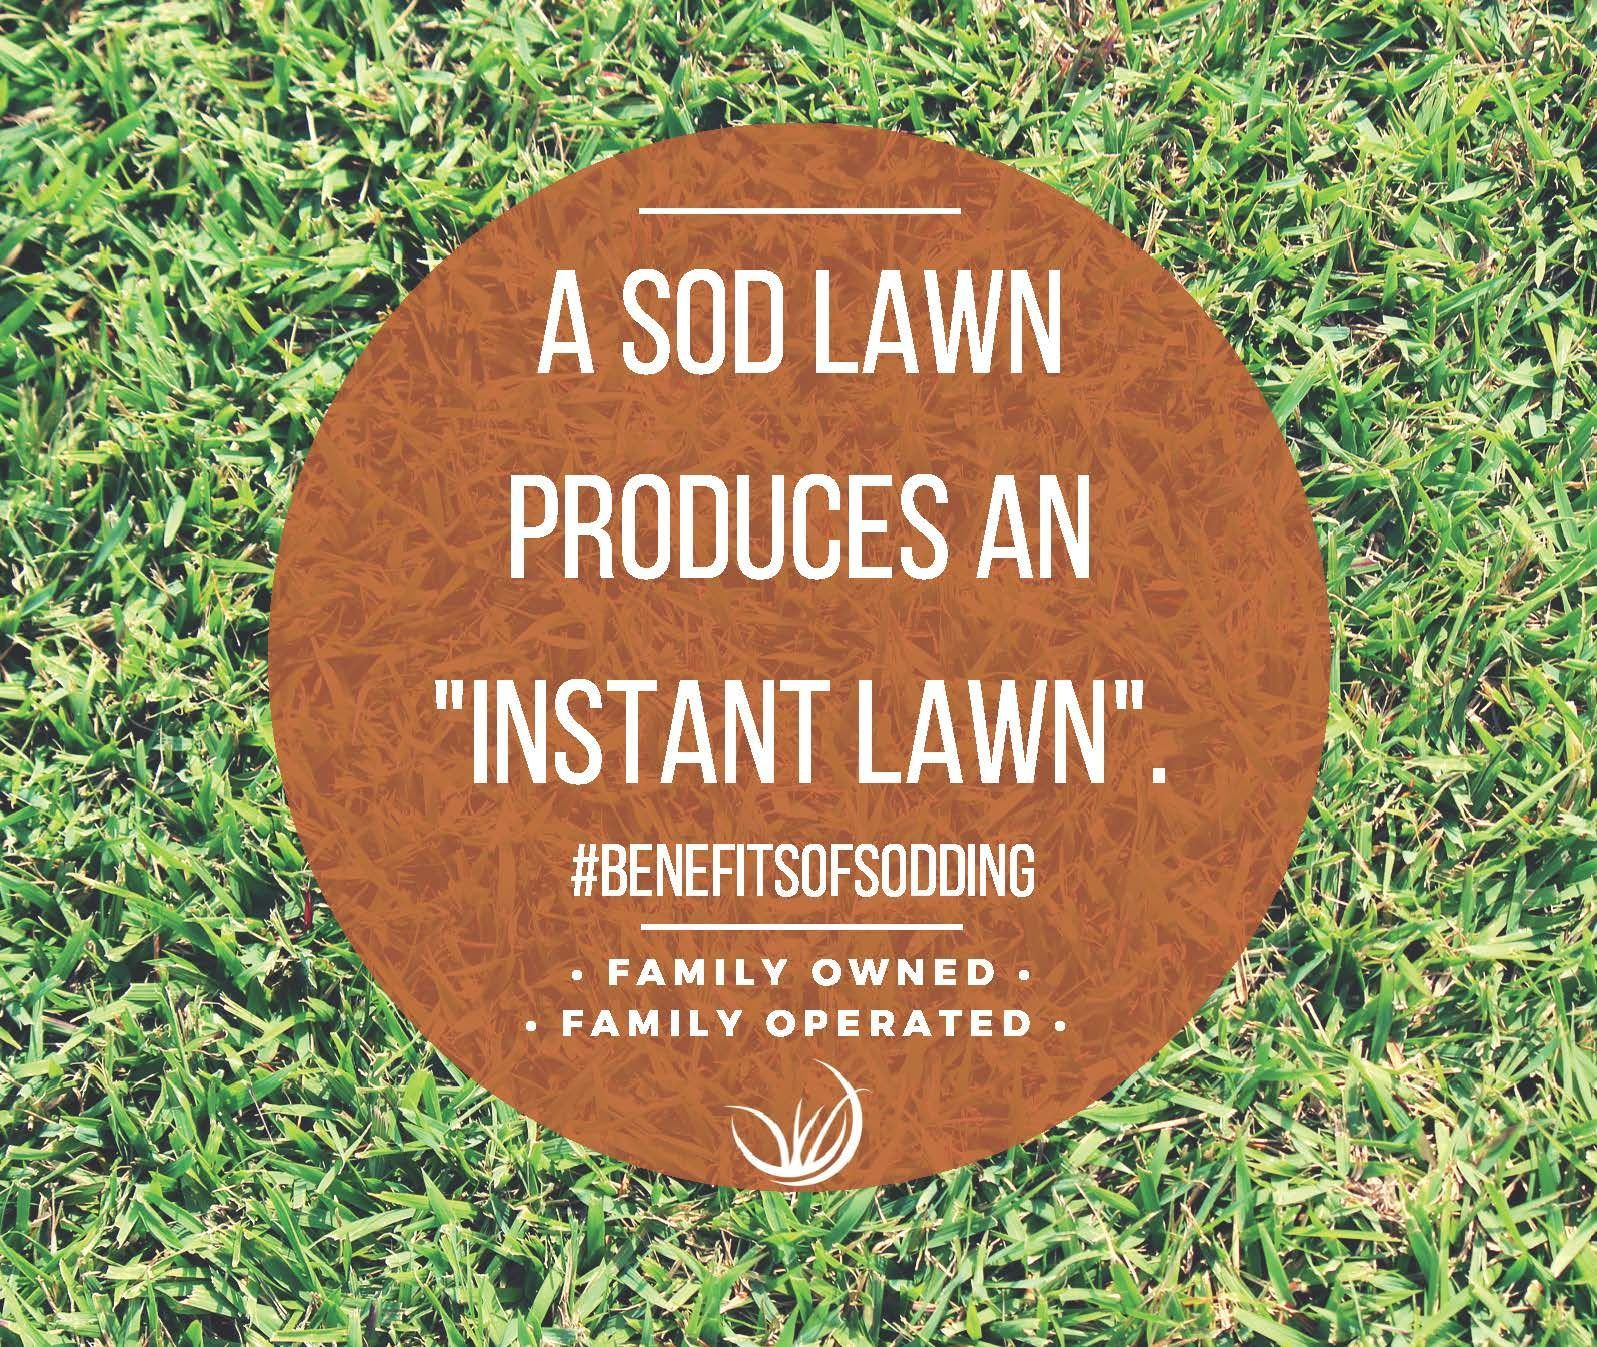 The Benefits Of Sodding Reseeding Lawn Lawn Yard Design